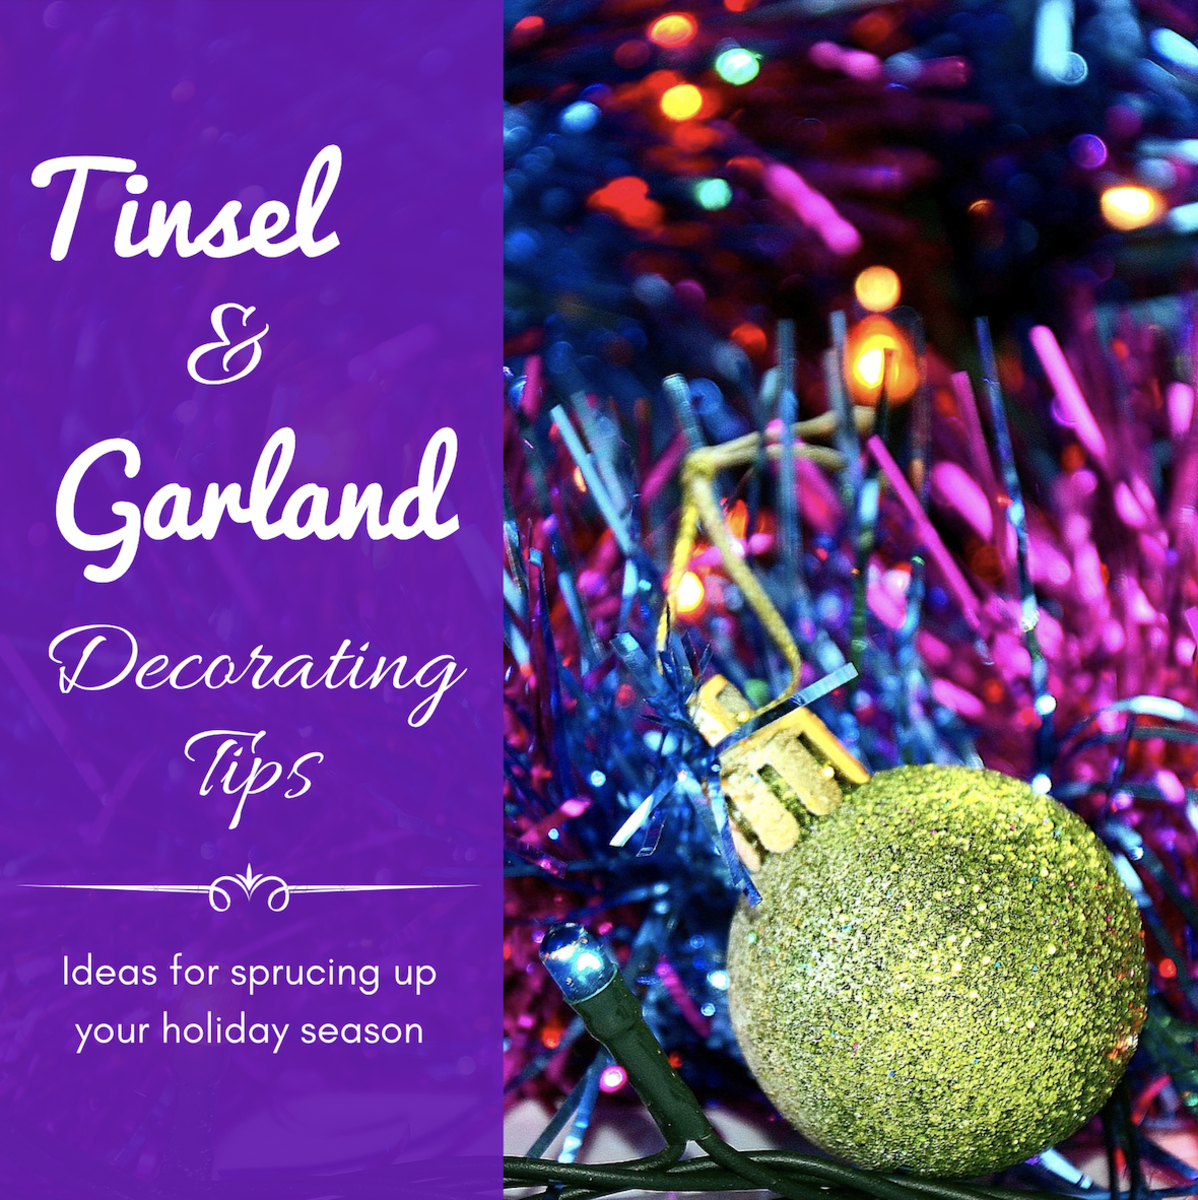 Tinsel and Garland Decorating Ideas